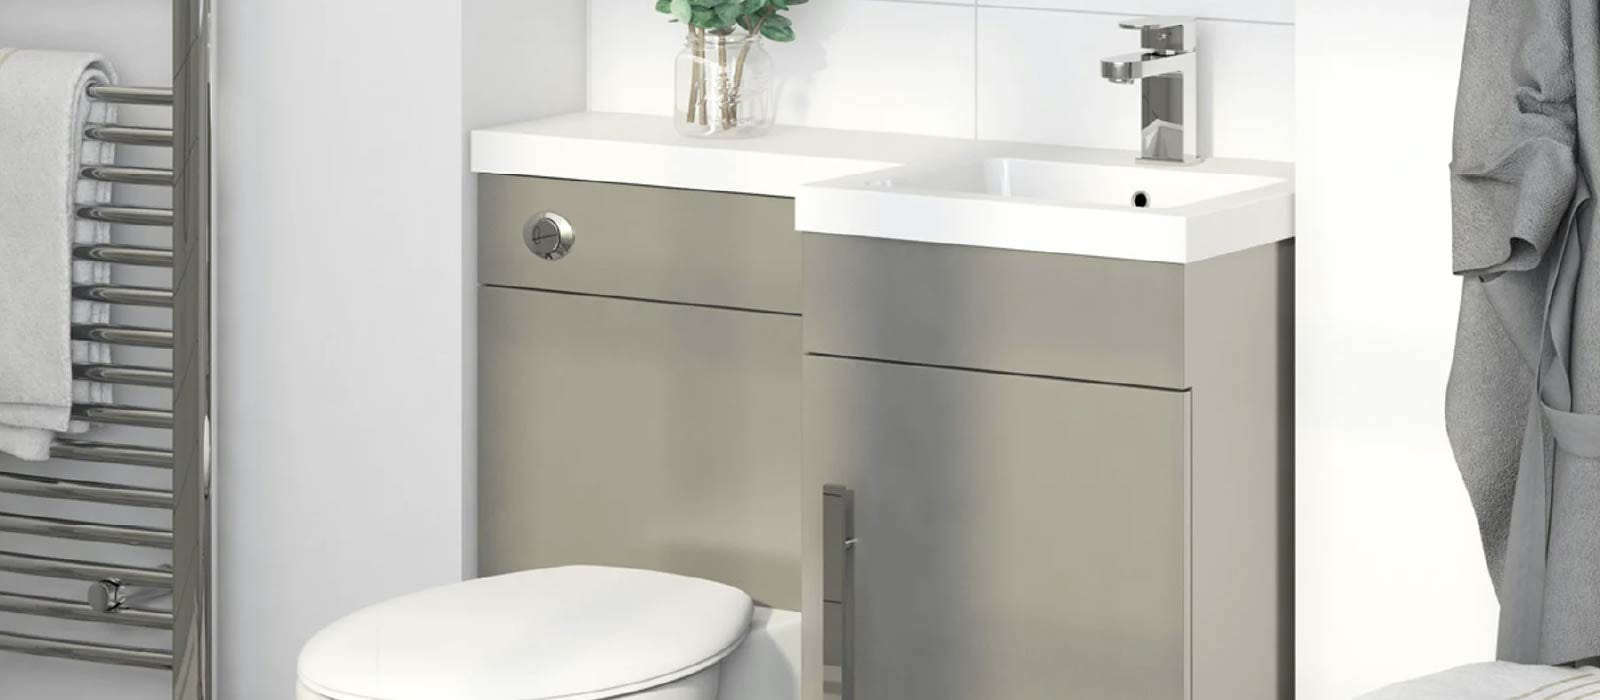 Clever Small Toilet Ideas, Small Bathroom Toilets